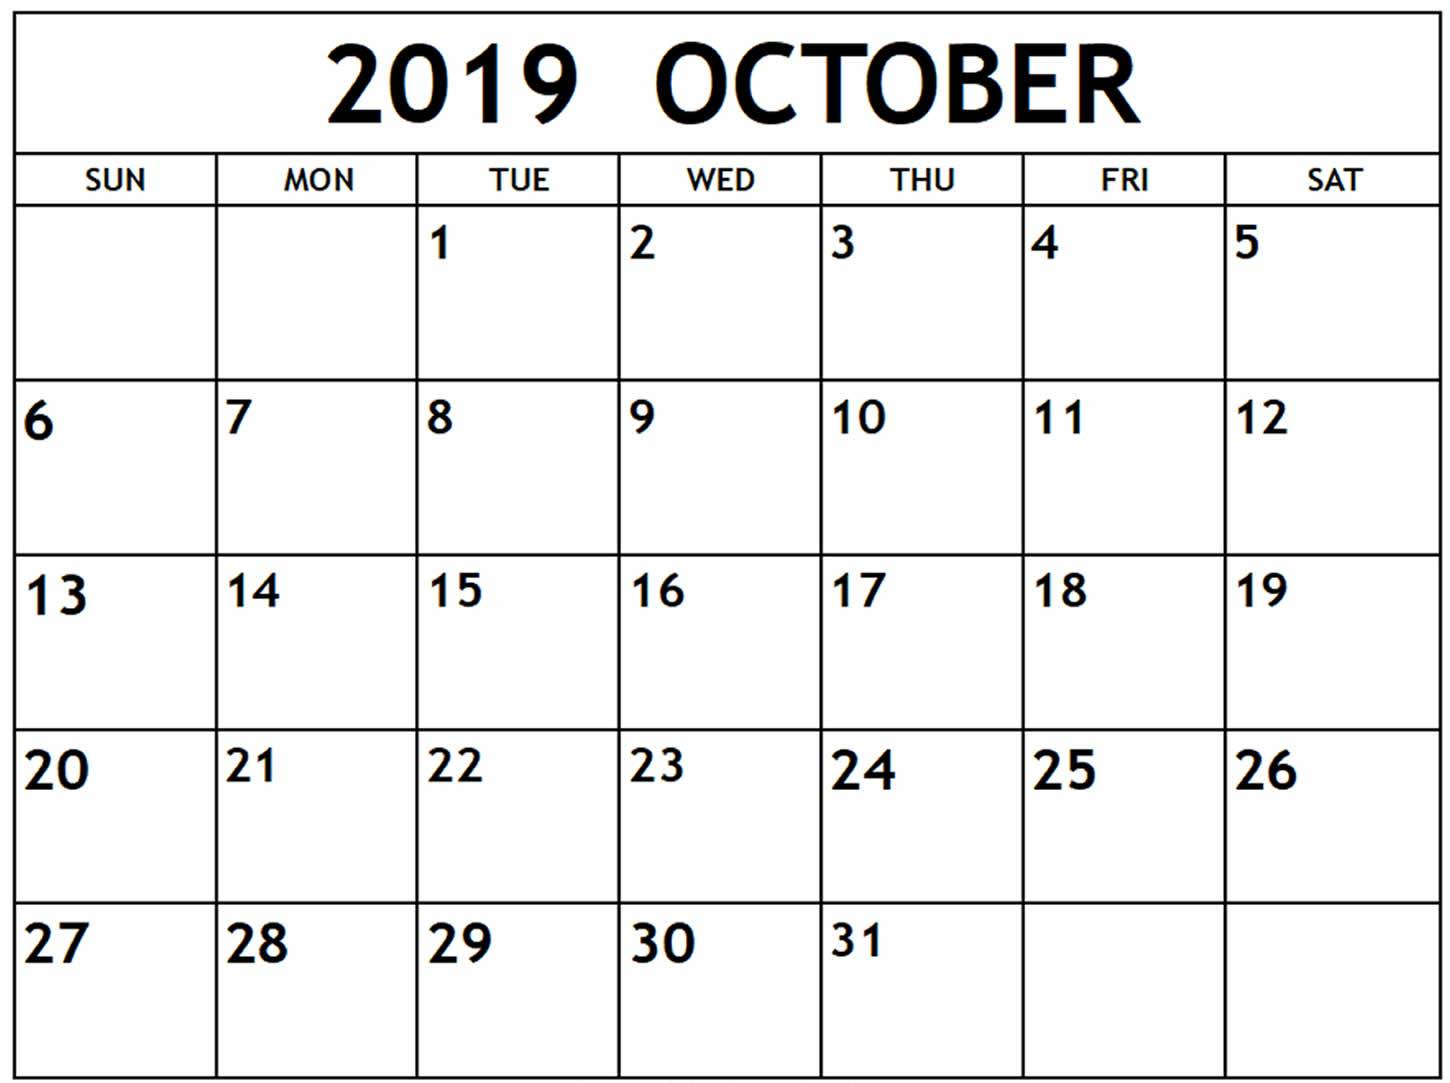 Fillable Calendar For October 2019